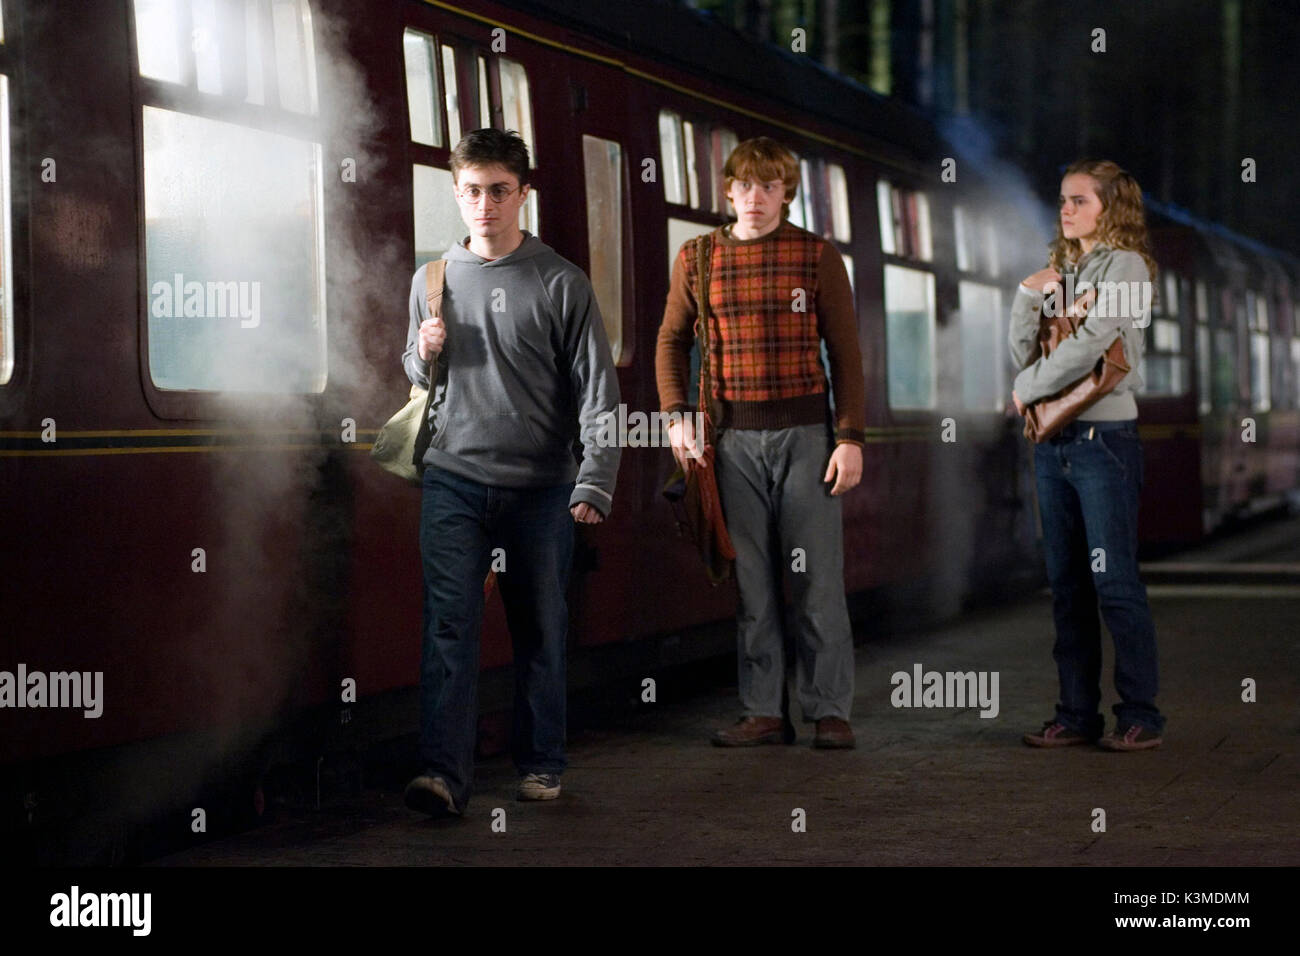 HARRY POTTER AND THE ORDER OF THE PHOENIX [US / BR 2007] DANIEL RADCLIFFE as Harry Potter, RUPERT GRINT as Ron Weasley, EMMA WATSON as Hermione Granger     Date: 2007 - Stock Image